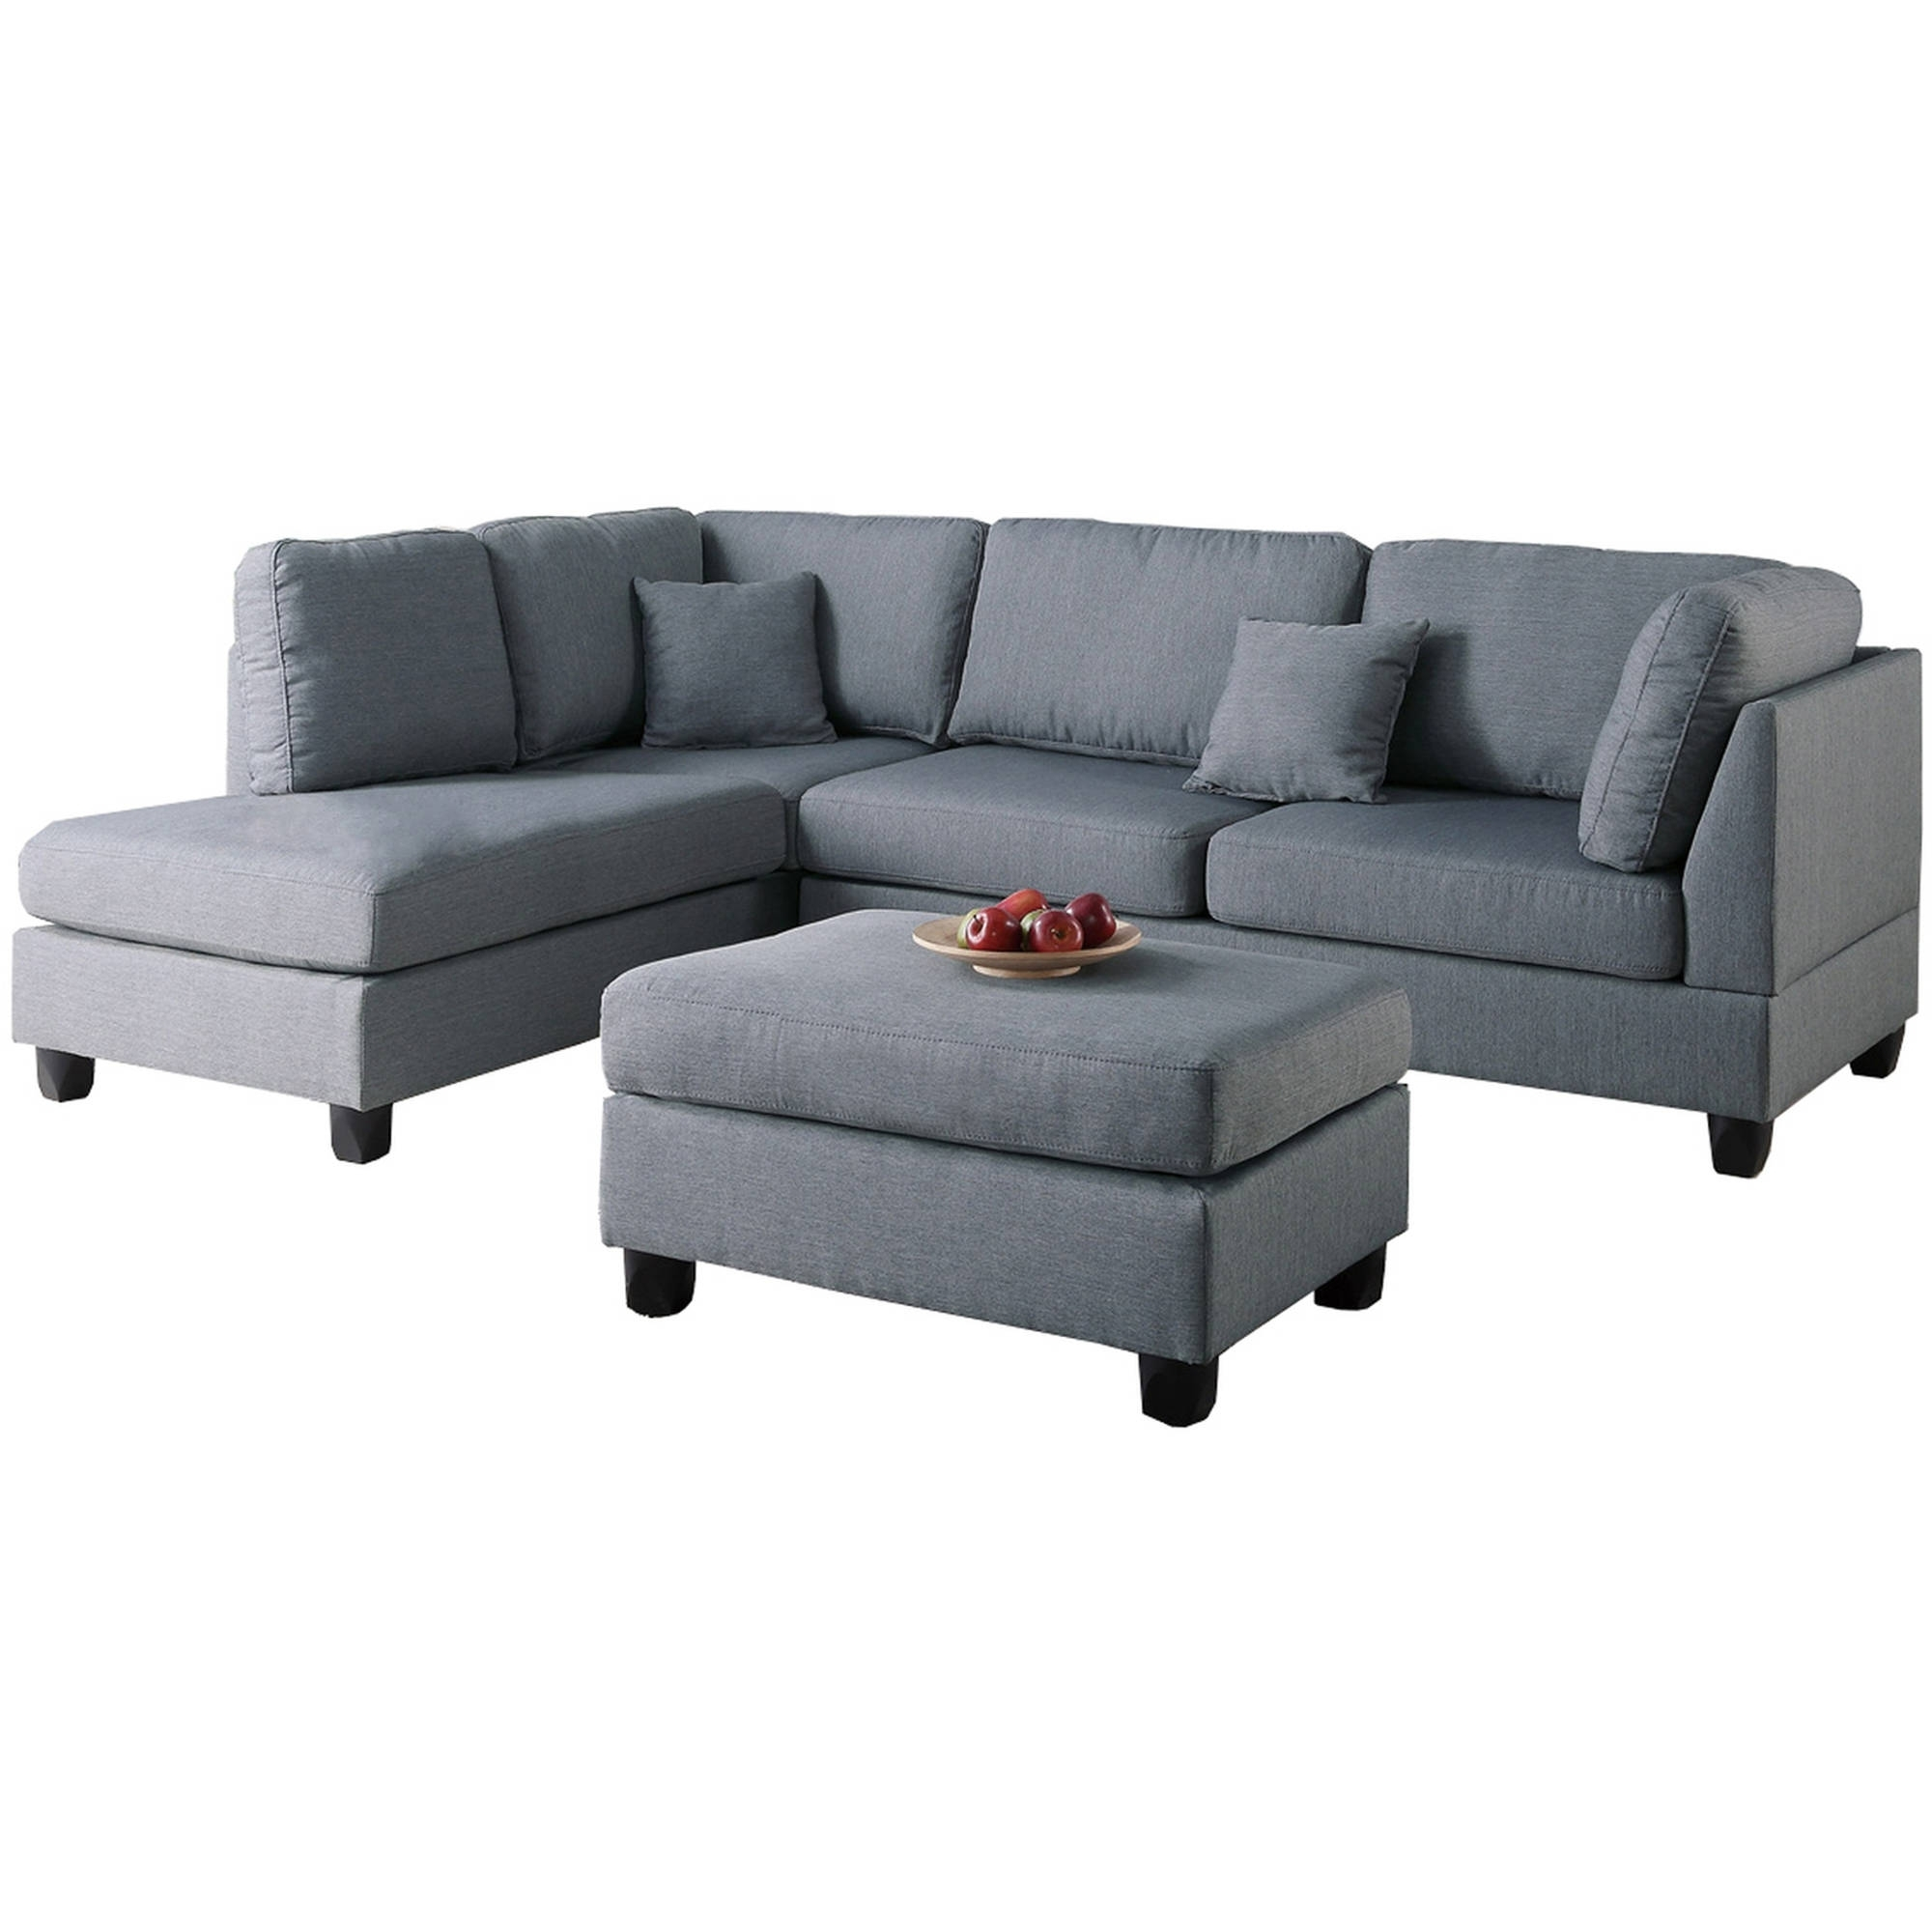 Most Recent Living Room Furniture Throughout Sofa Chairs For Living Room (View 11 of 20)